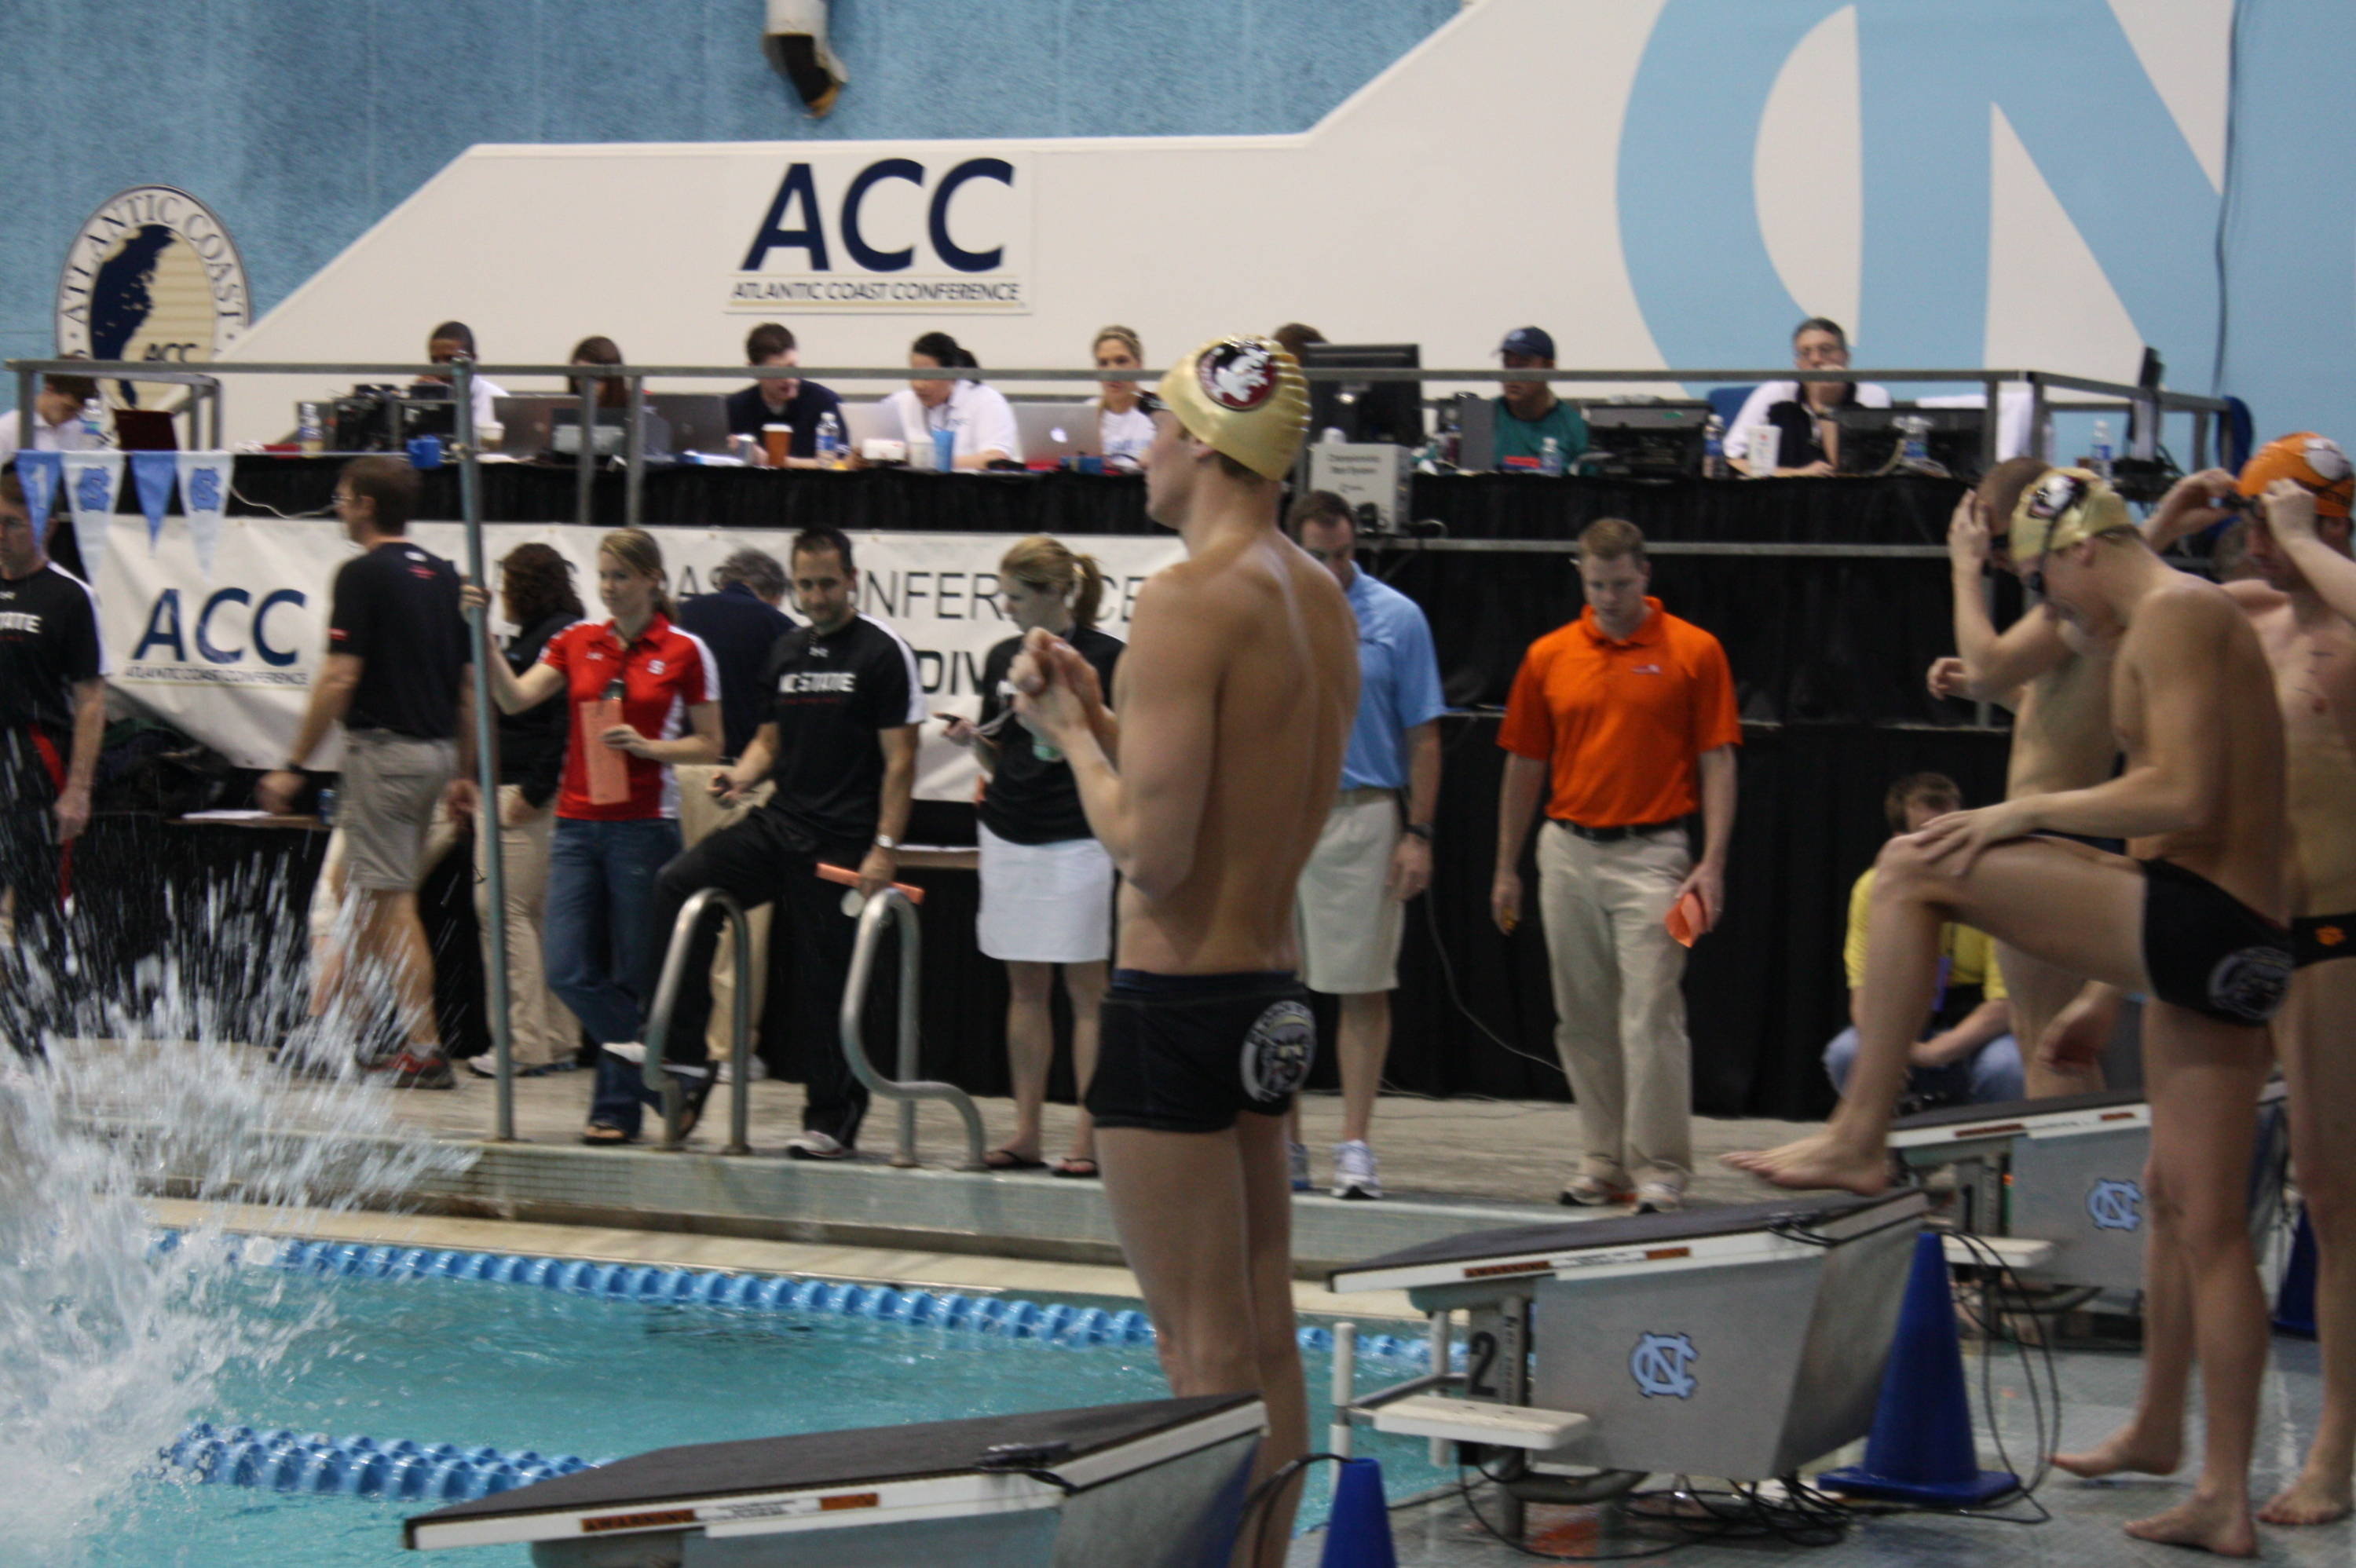 ACC Championships Day 4